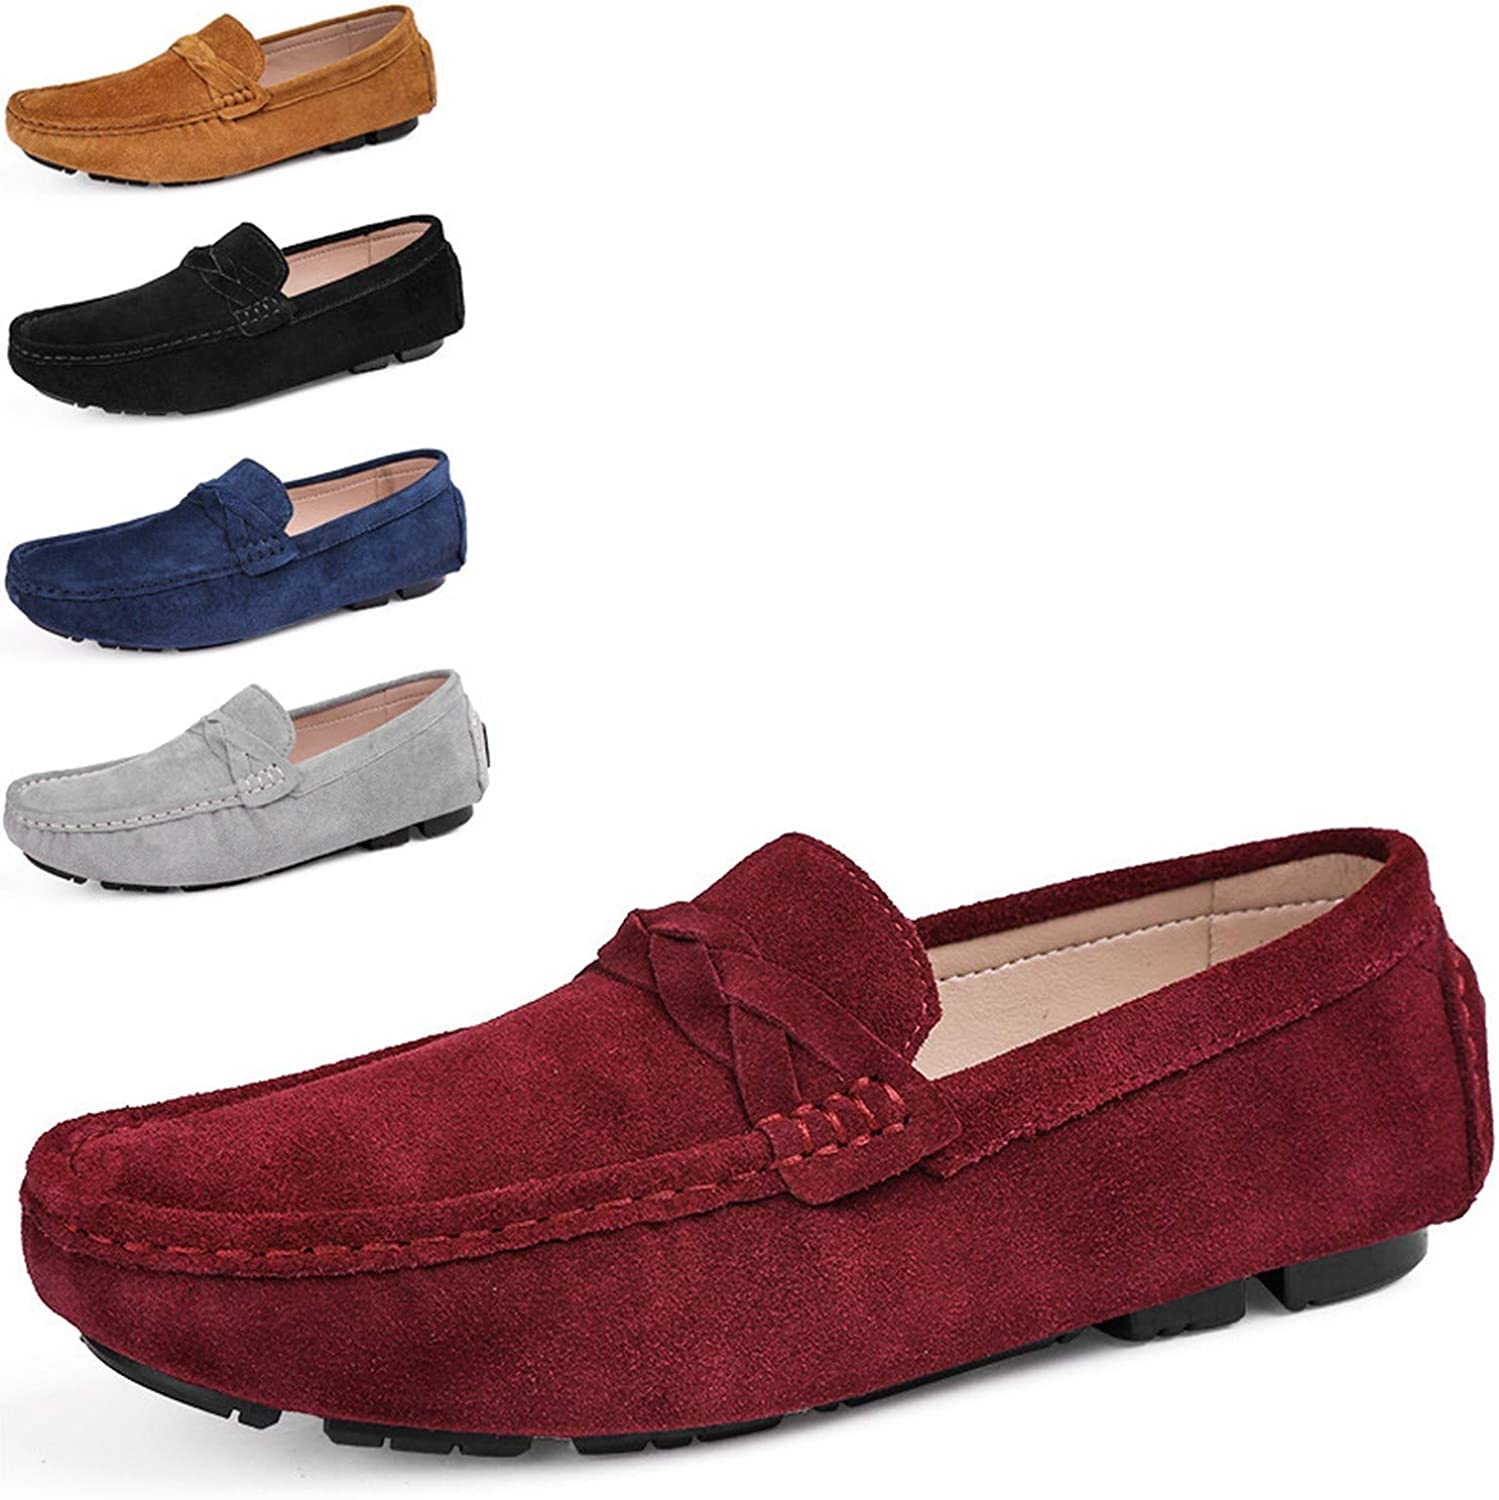 Men Casual Shoes Men Shoes Split Leather Men Loafers Moccasins Slip On Driving Mens Flats Loafers,Red,8